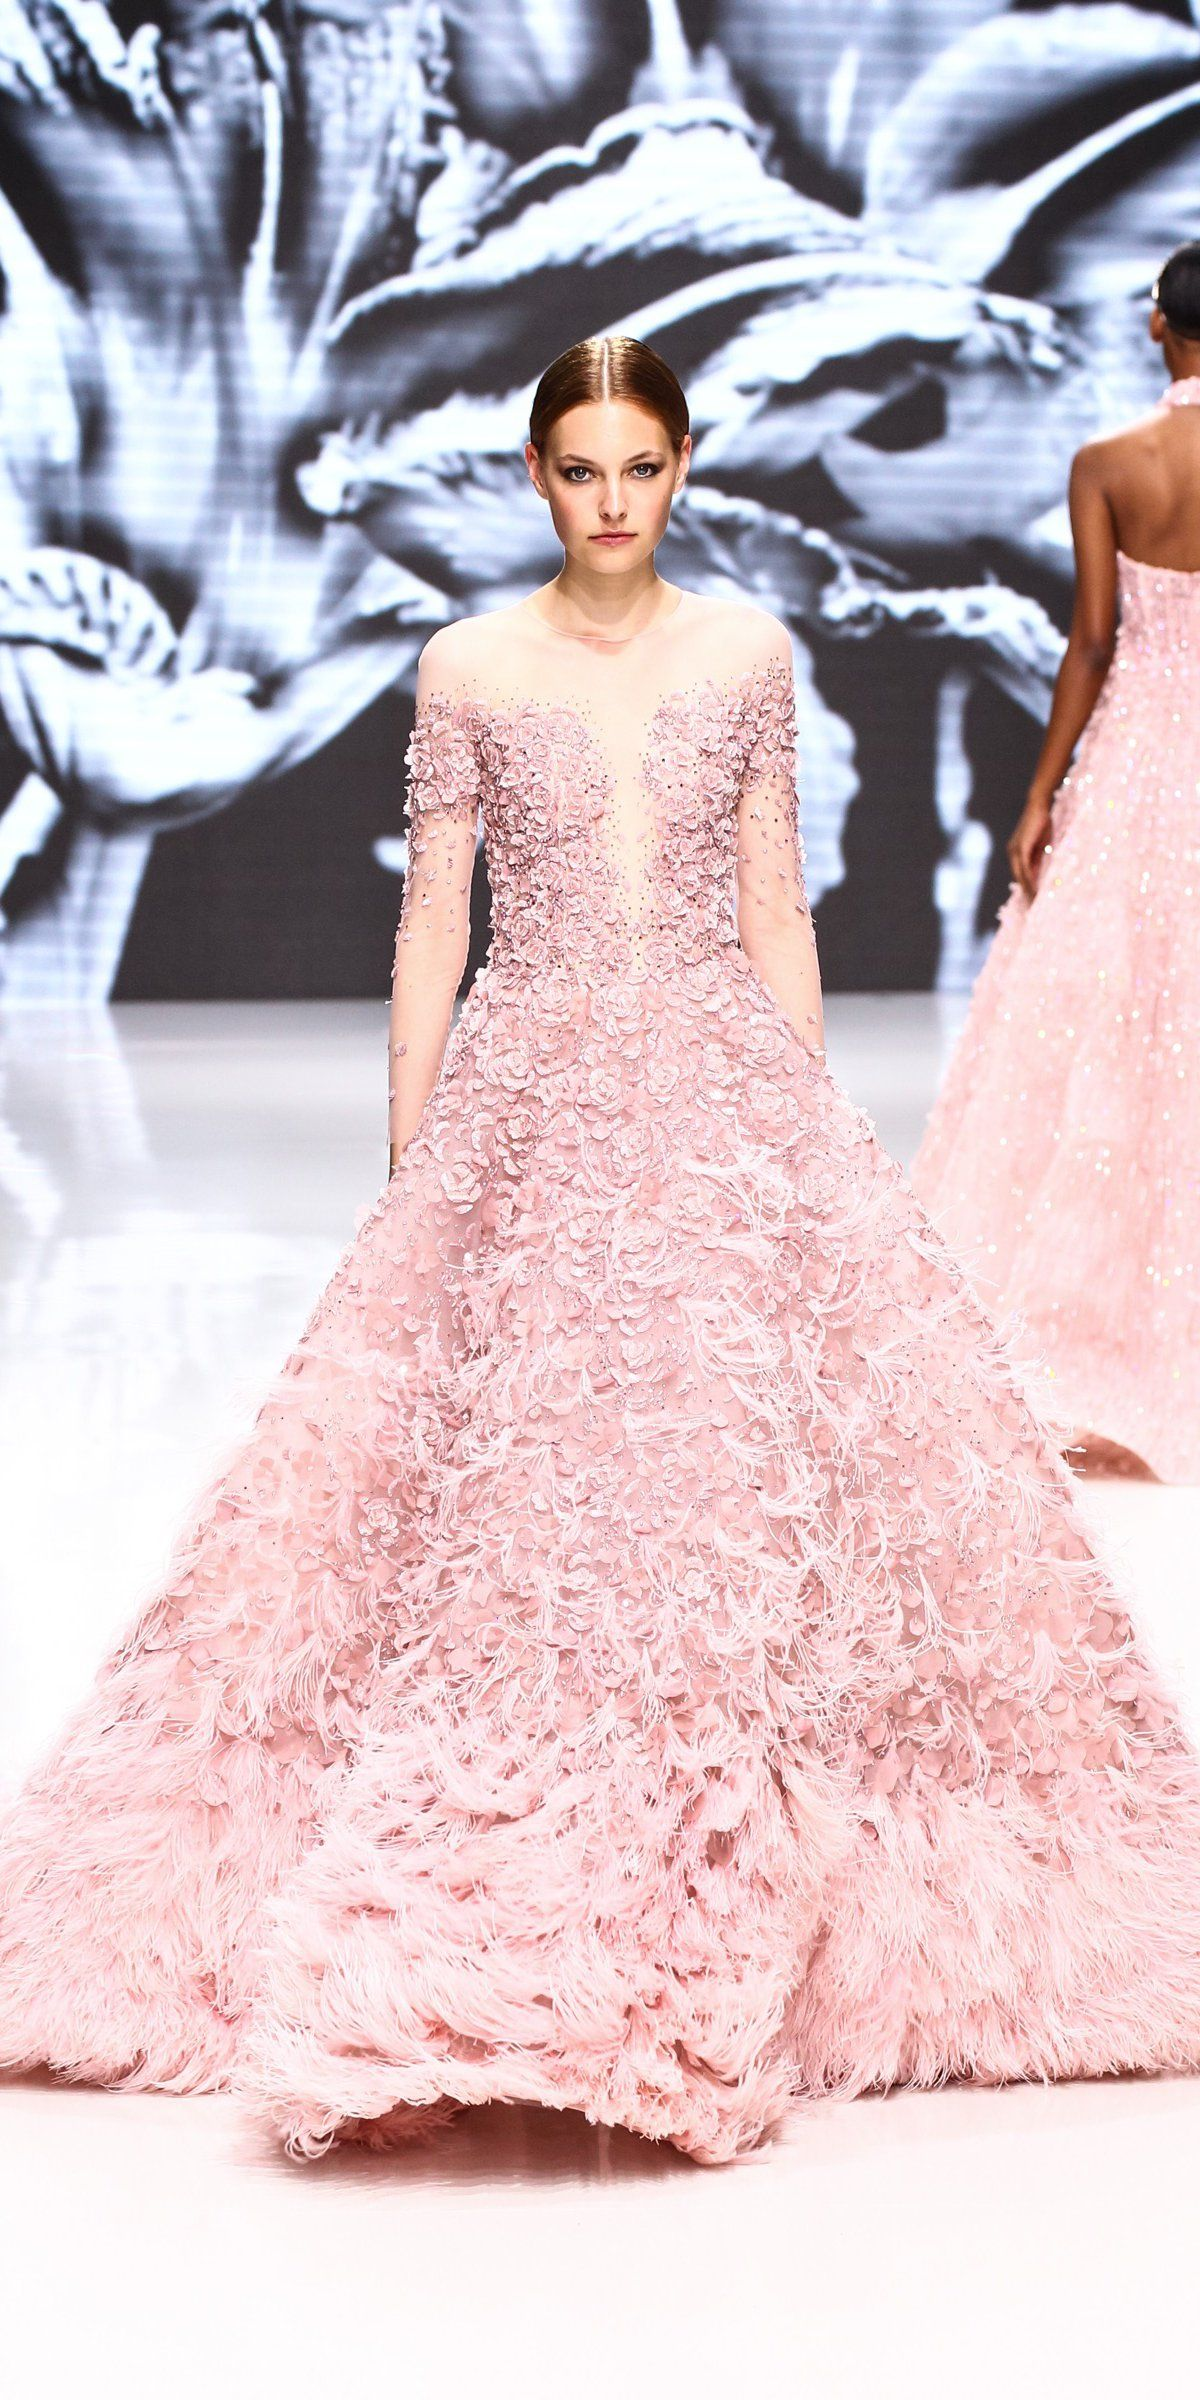 Pink snowflakes - 19 pink Haute Couture gowns this Winter ...